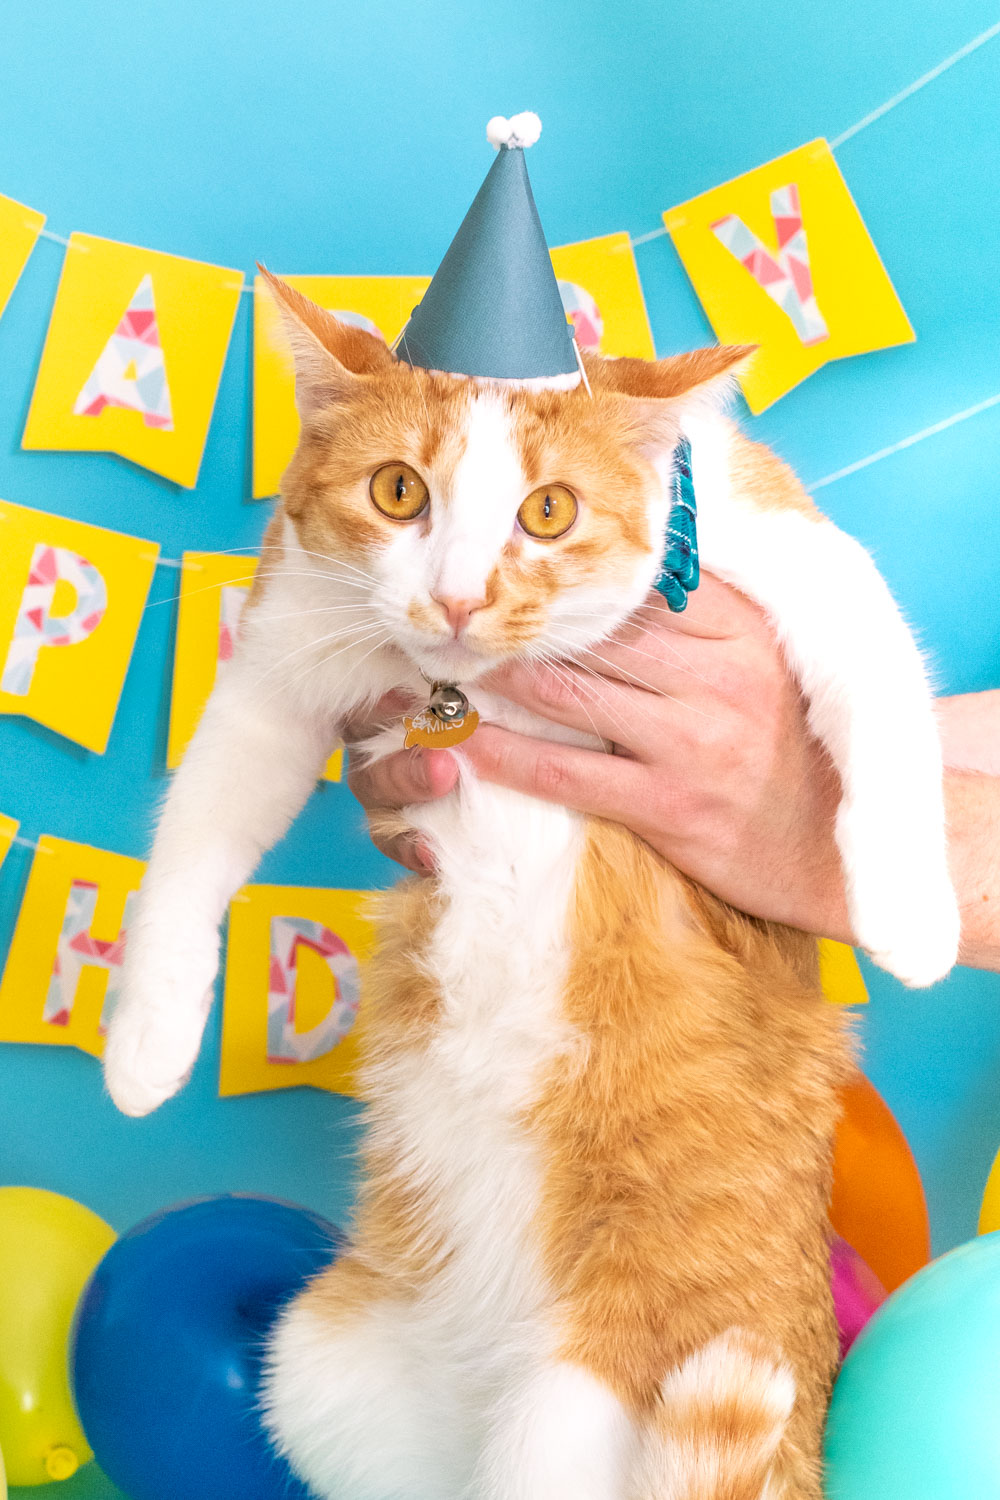 cat wearing party hat in front of banner for birthday party